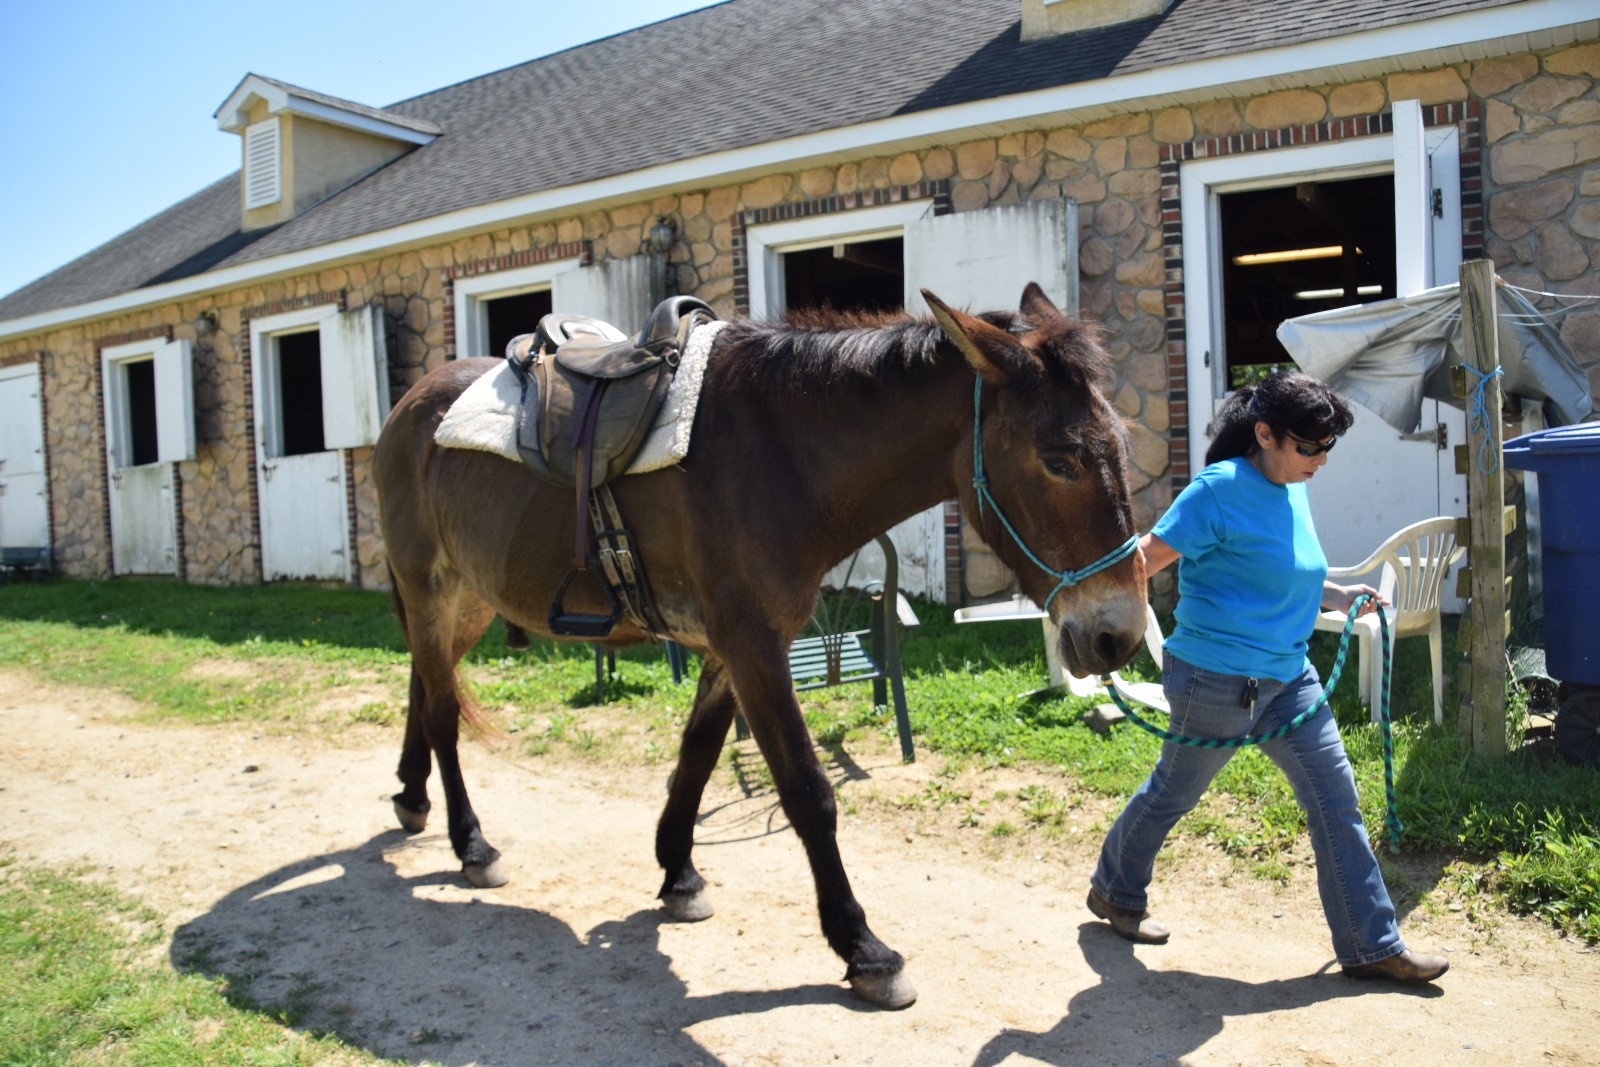 Equine physical therapy - Cheryl Stevens Leads Mule Lazer To His Equine Therapy Session On Wednesday May 17 Lazer Is One Of Several Animals At Majoda Stables In Moorestown Used For